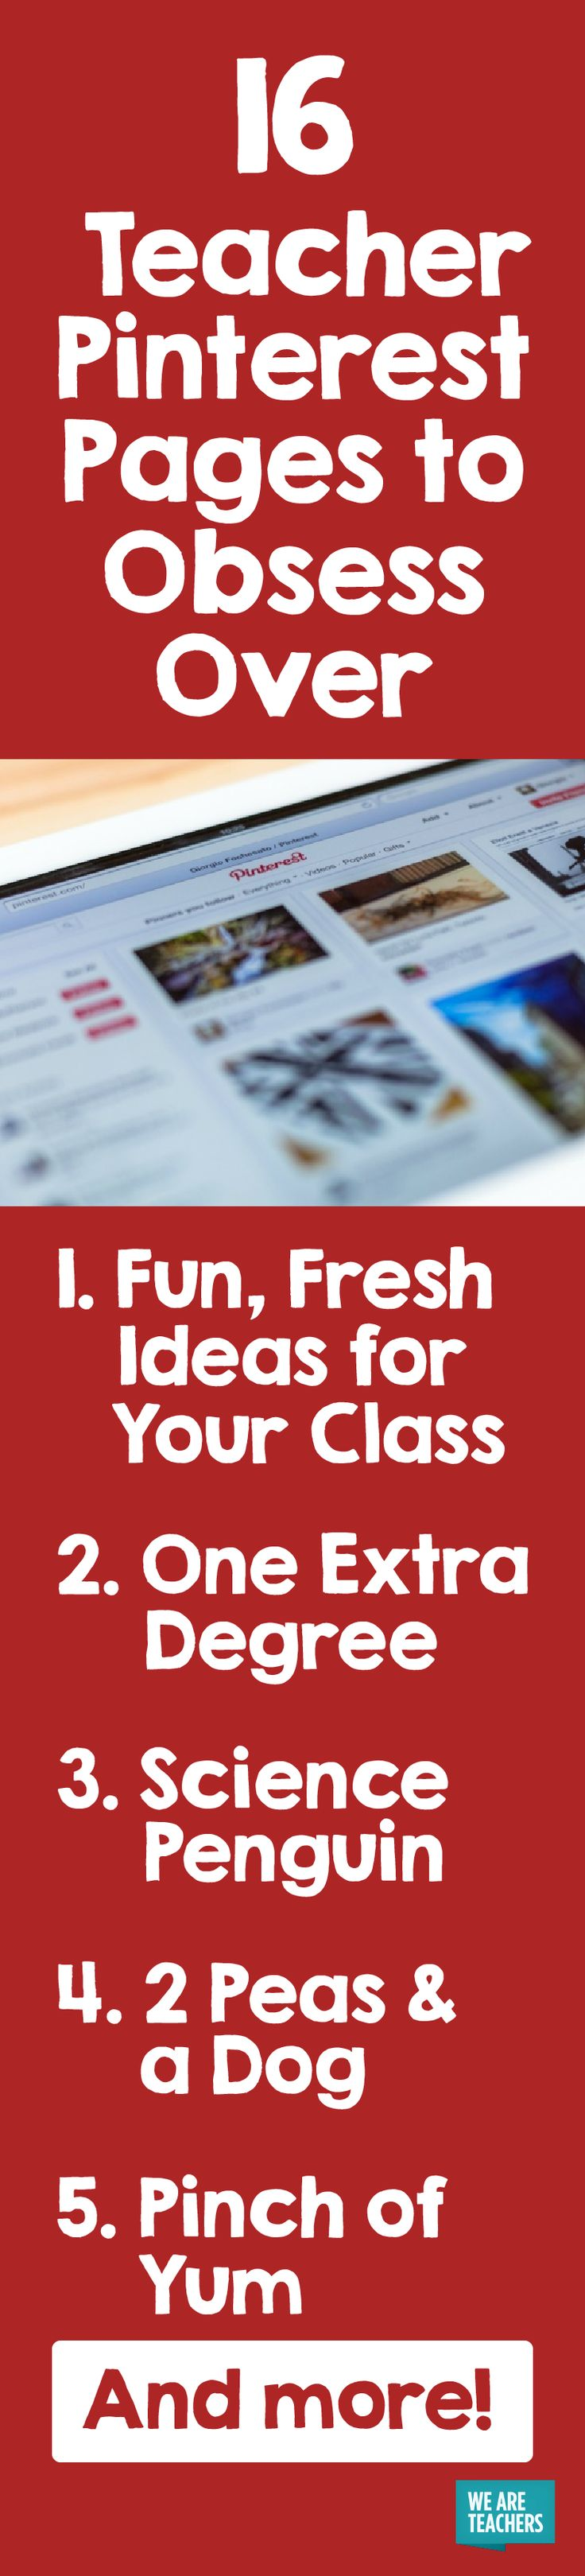 There is so much teacher content on Pinterest it's hard to know where to start! We've gathered the best teacher Pinterest pages to inspire you.